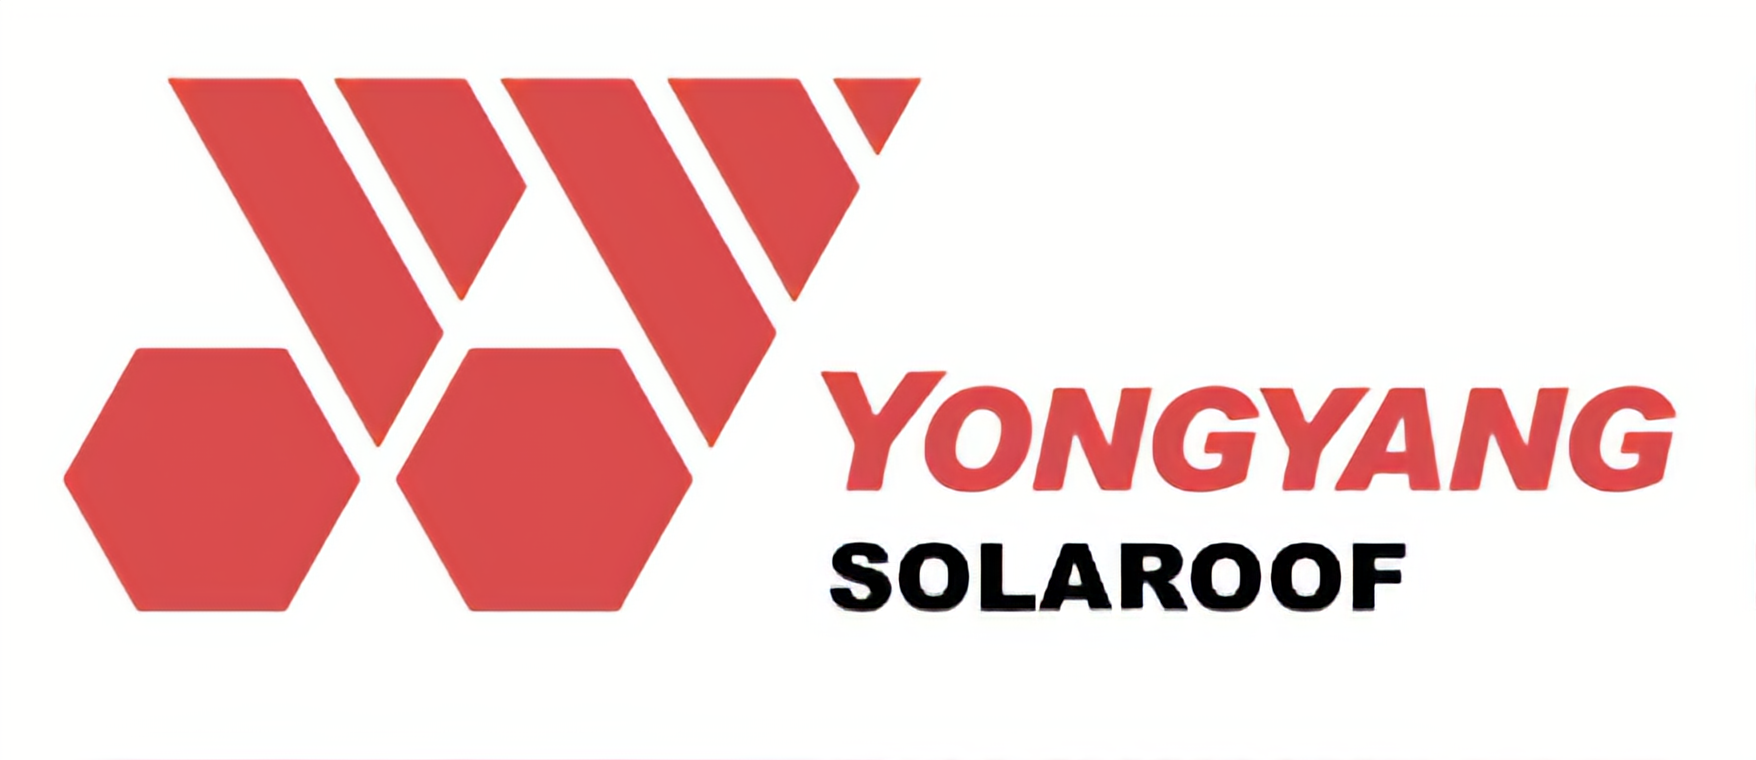 Yongyang – Pioneer in Roofing and Solar Energy Solution